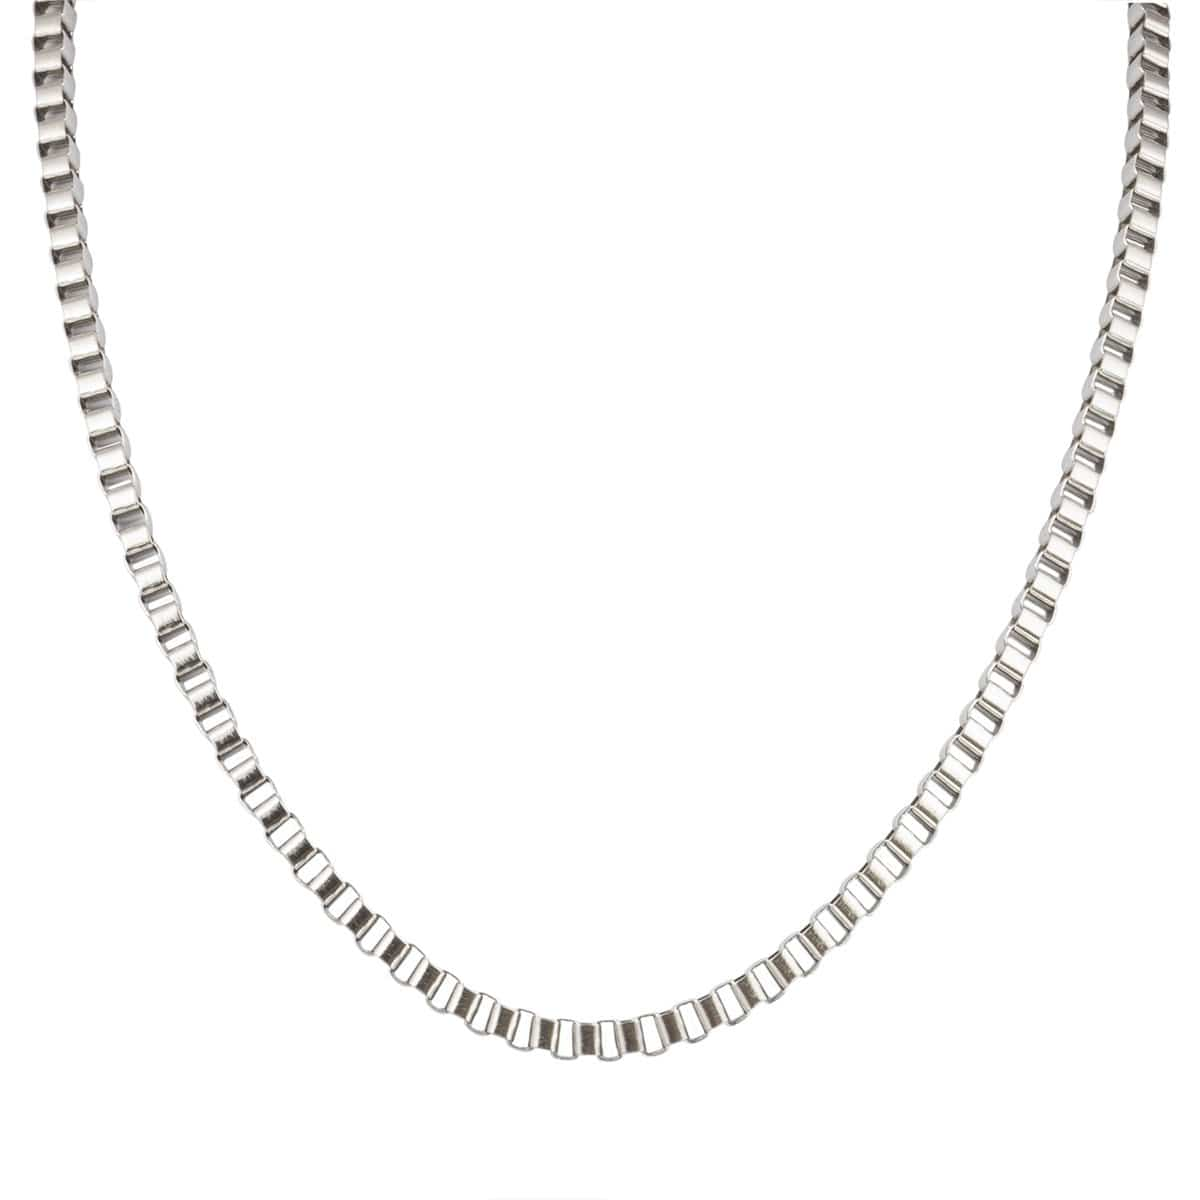 Silver Stainless Steel 4 mm Venetian Box Chain Chains